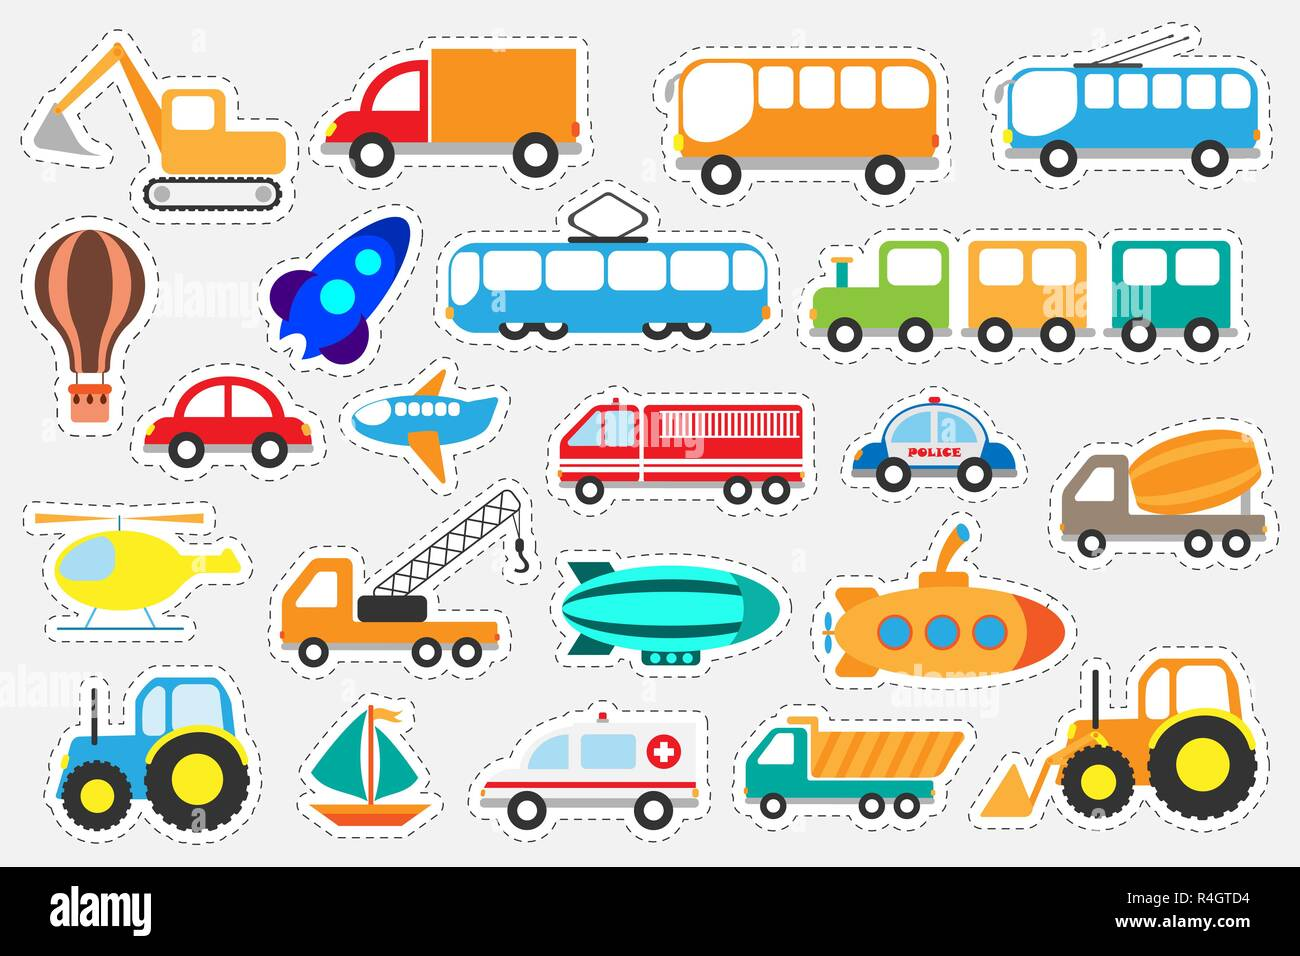 Different Colorful Transport For Children Fun Education